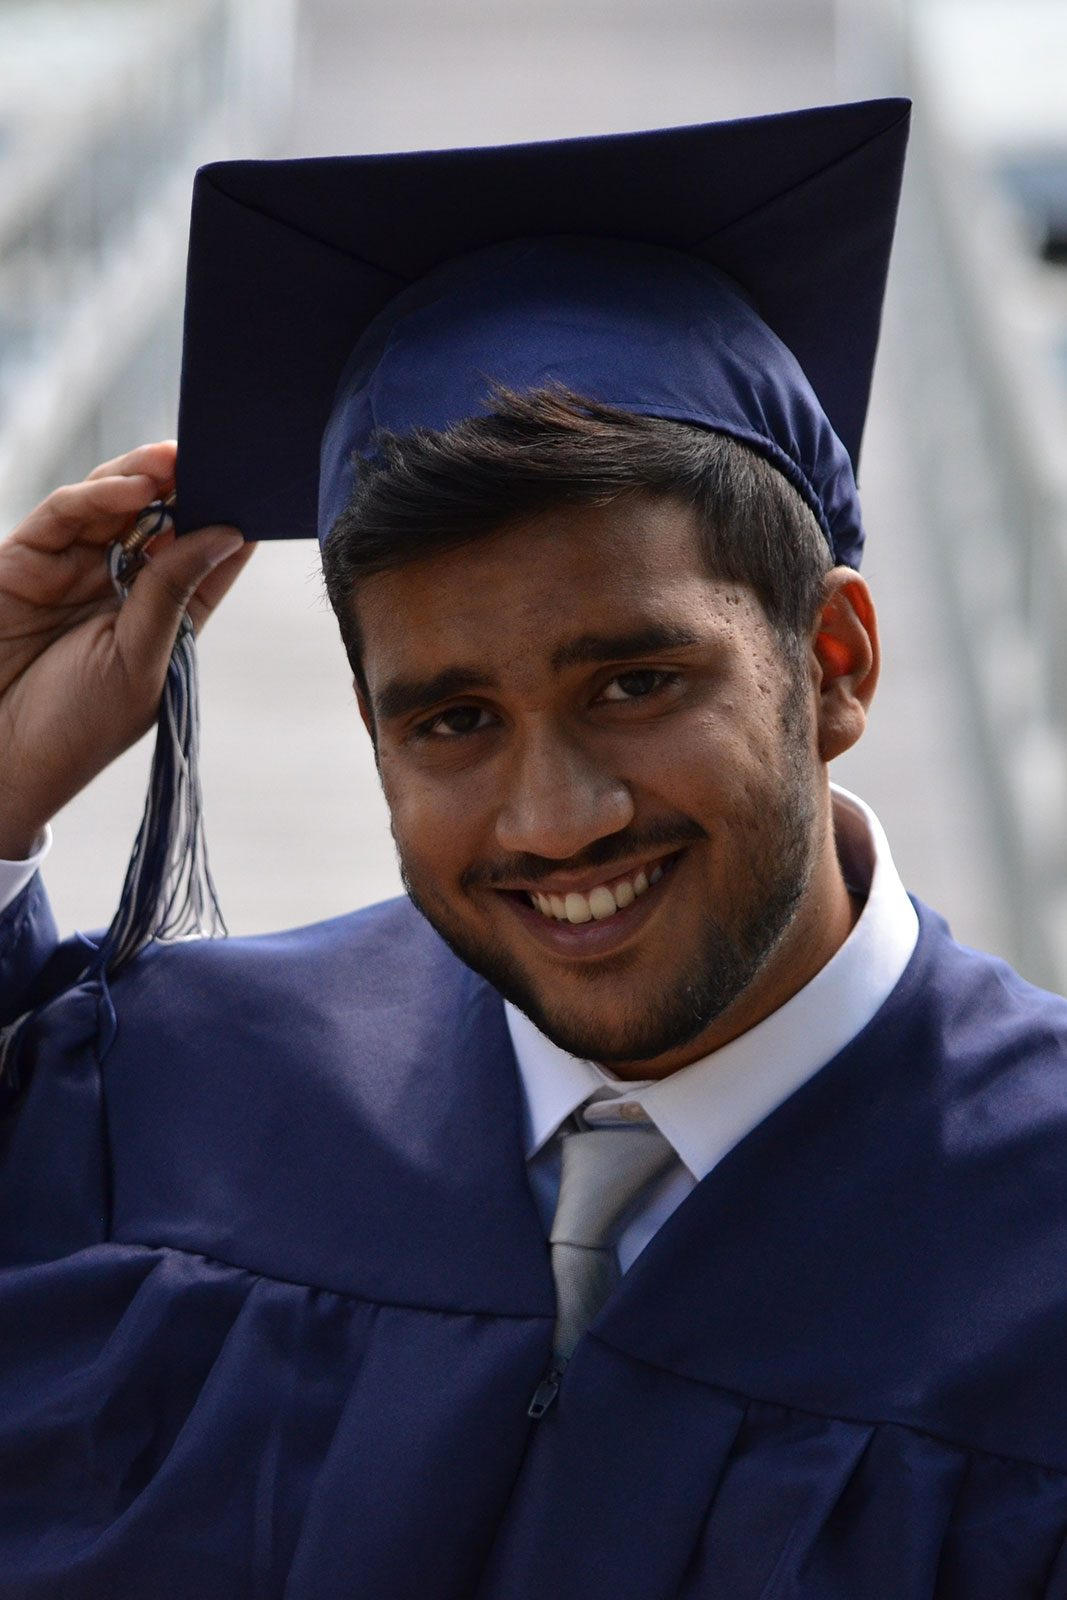 13. Graduate student smiling with gown on